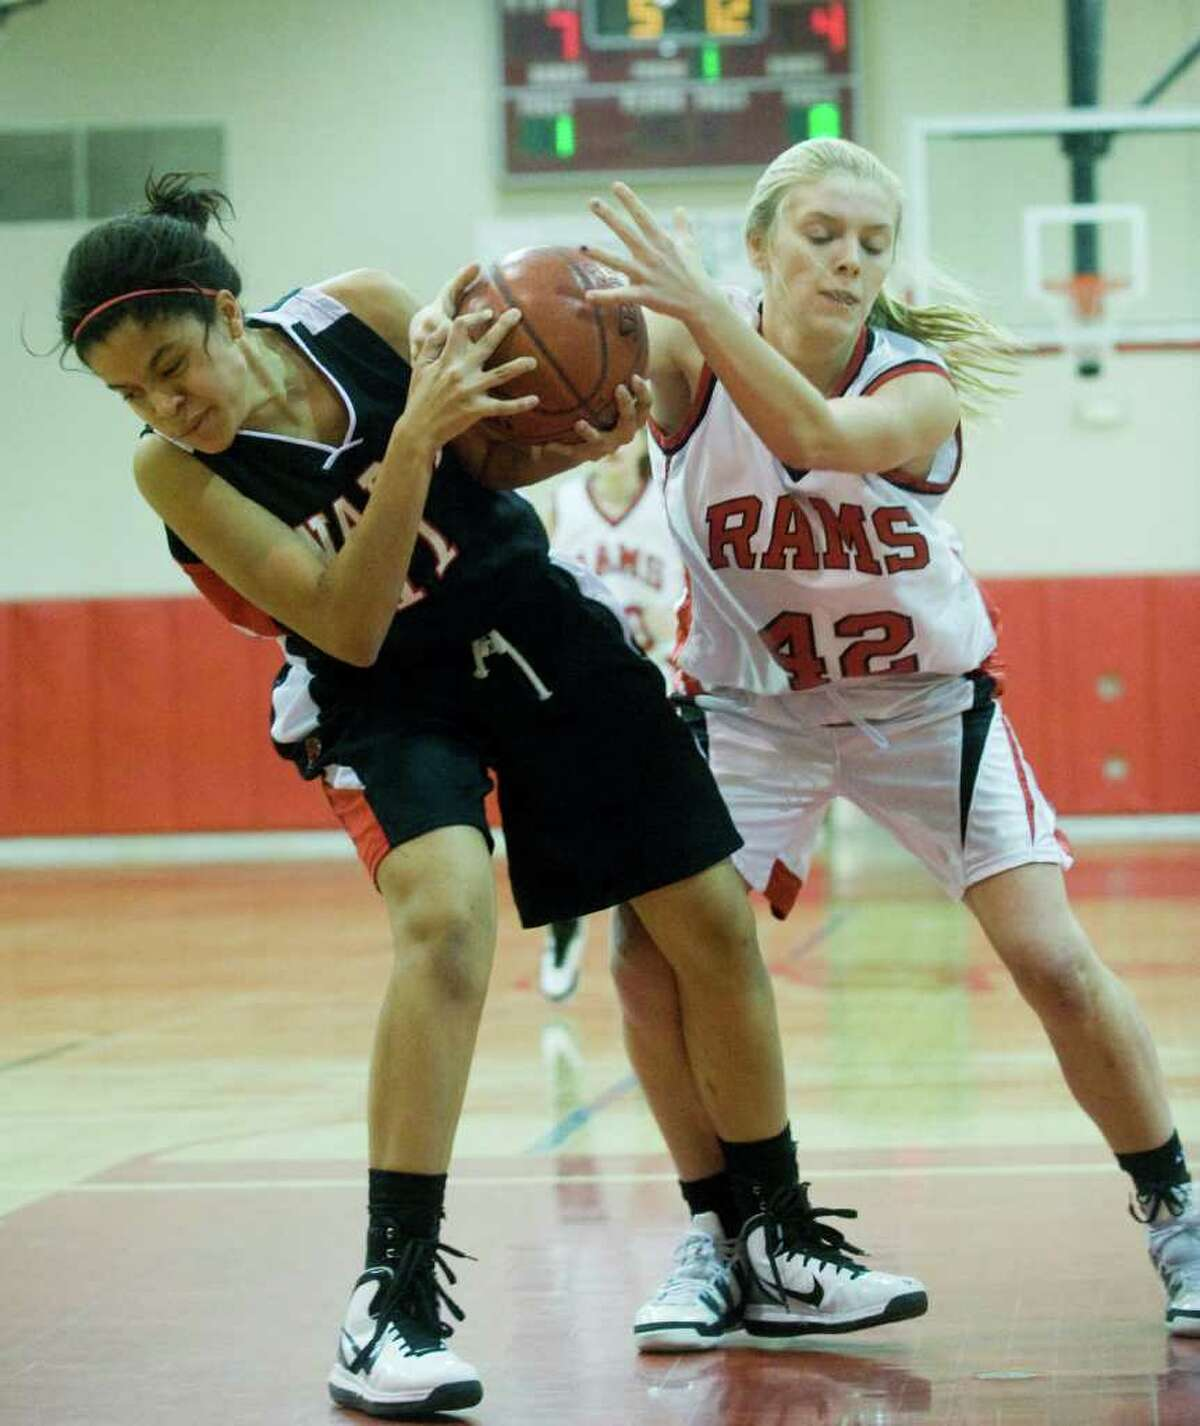 New Canaan's Kelly Armstrong and Warde's Jerelyn Luther battle as New Canaan hosts Fairfield Warde in a girls basketball game in New Canaan, Conn., February 10, 2011.